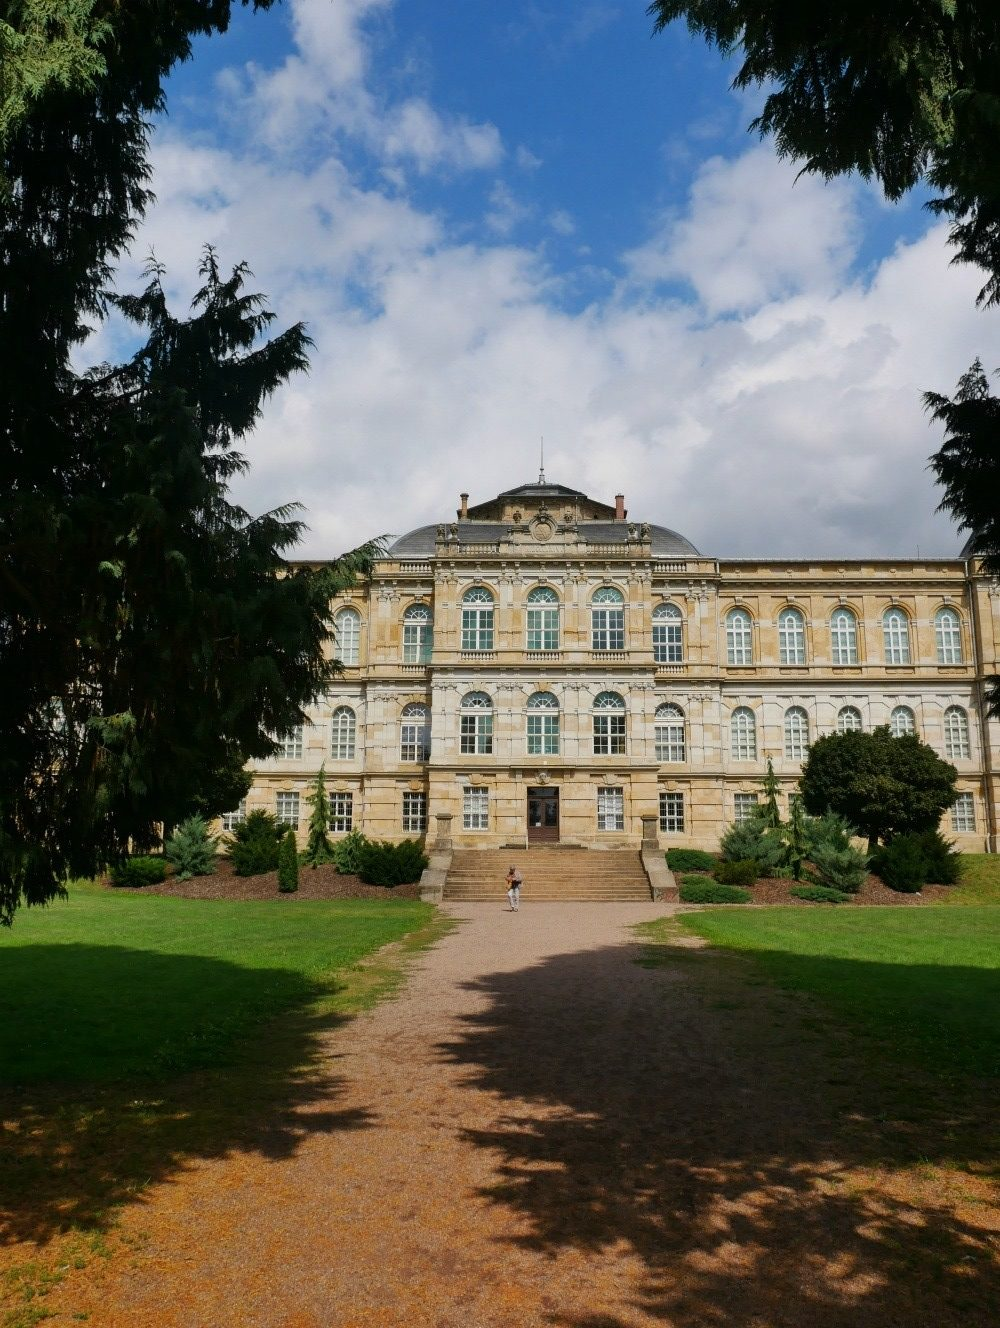 Friedenstein Museum in Gotha, Thuringia, Germany Photo Heatheronhertravels.com